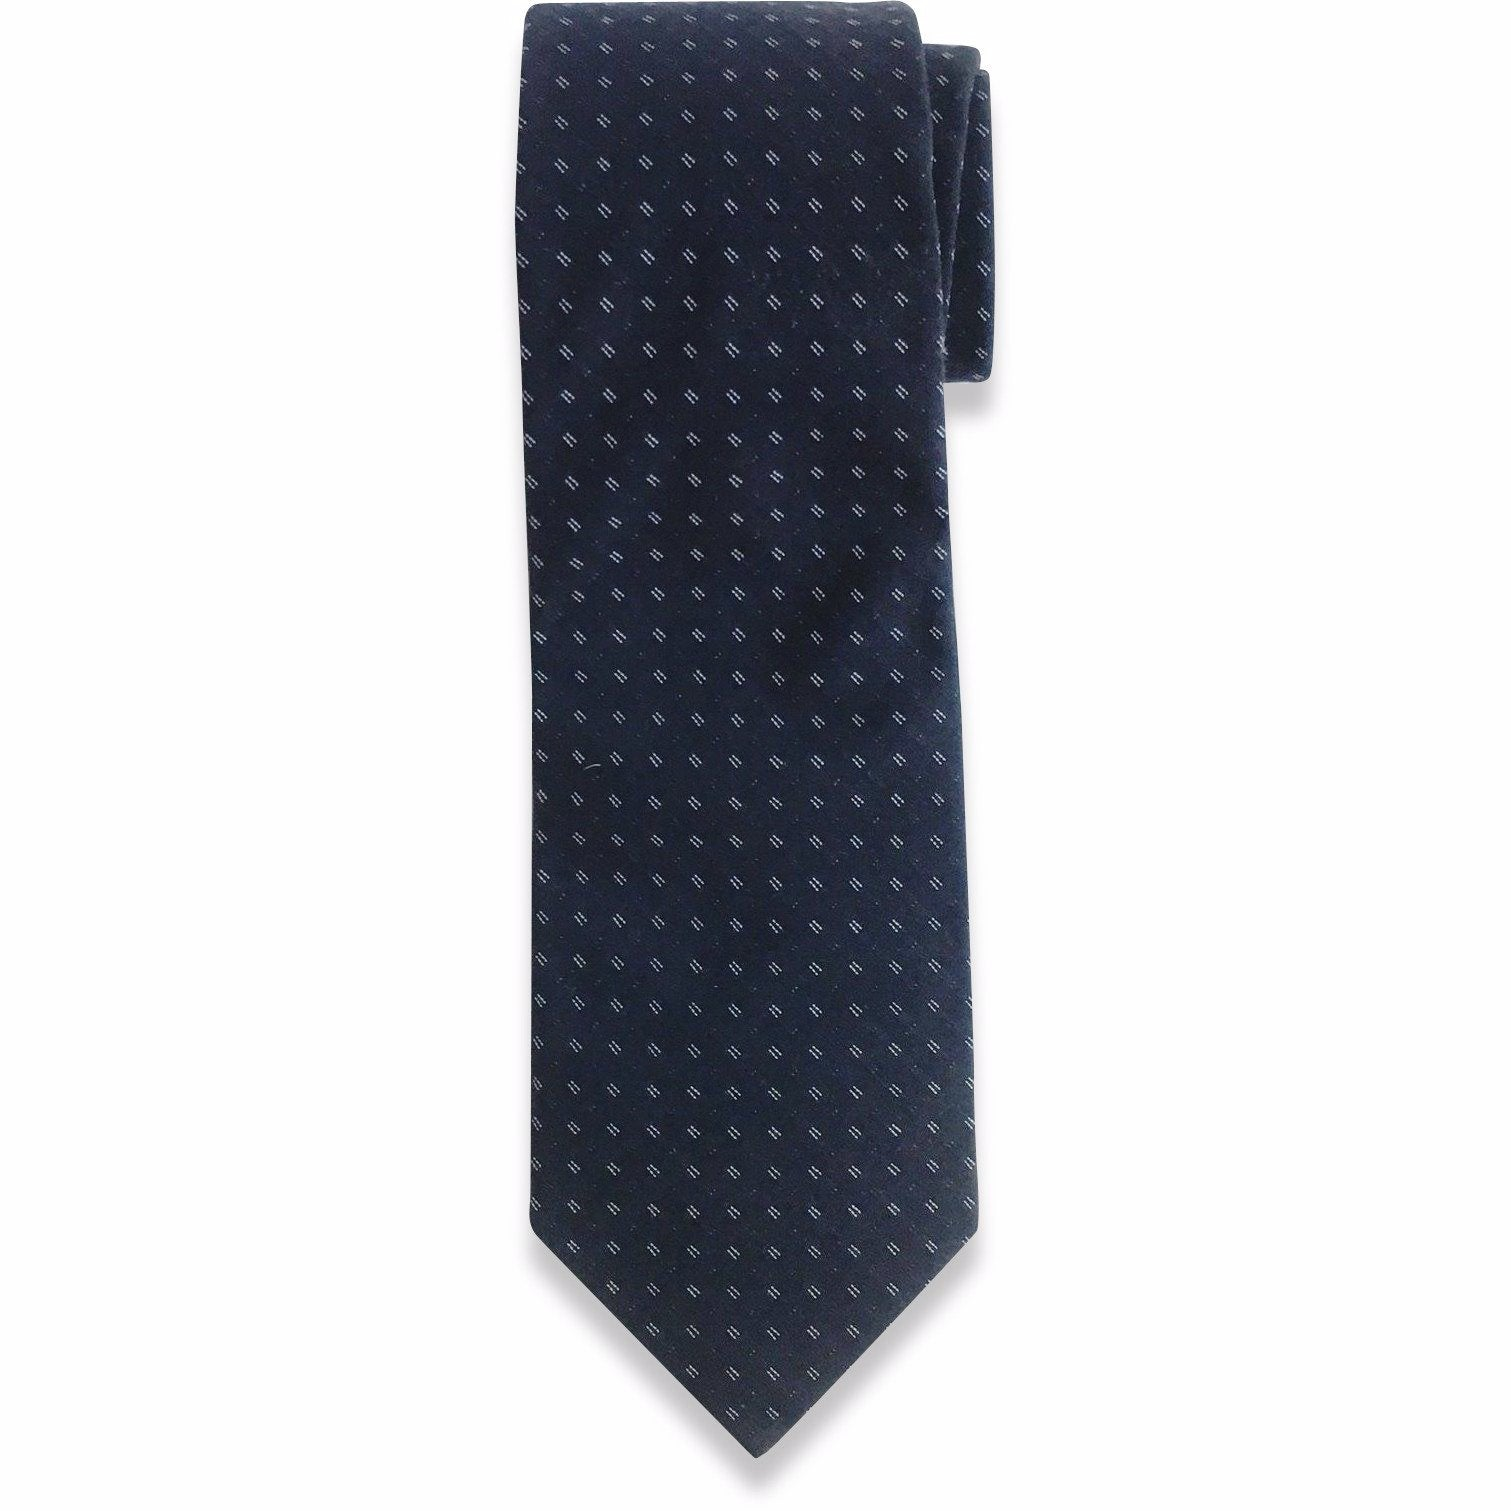 The Charcoal Pic Tie